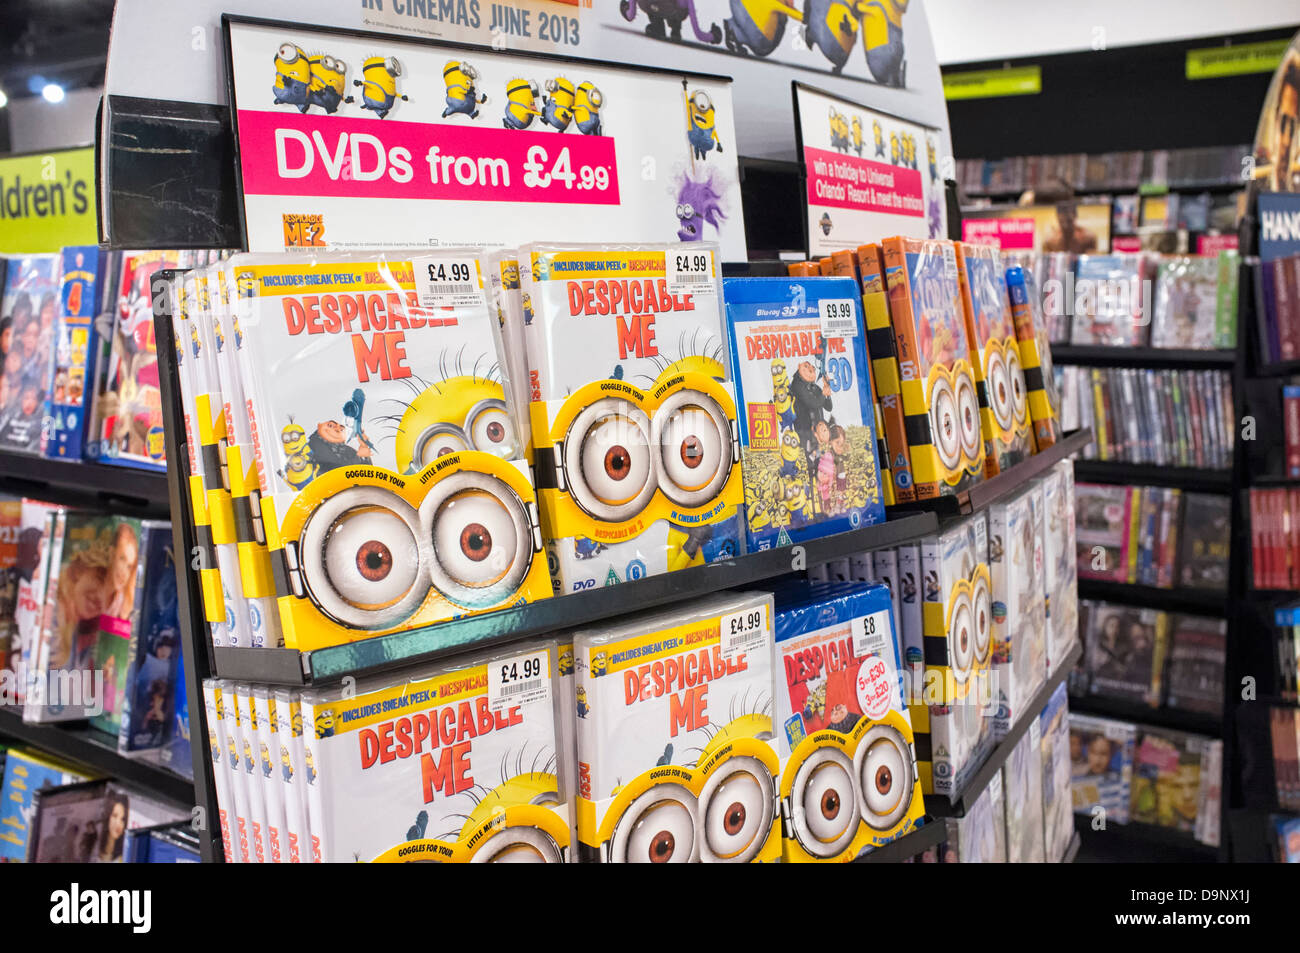 Despicable Me DVD and Blu-rays on sale in a shop prior to the second film in the series being released - Stock Image